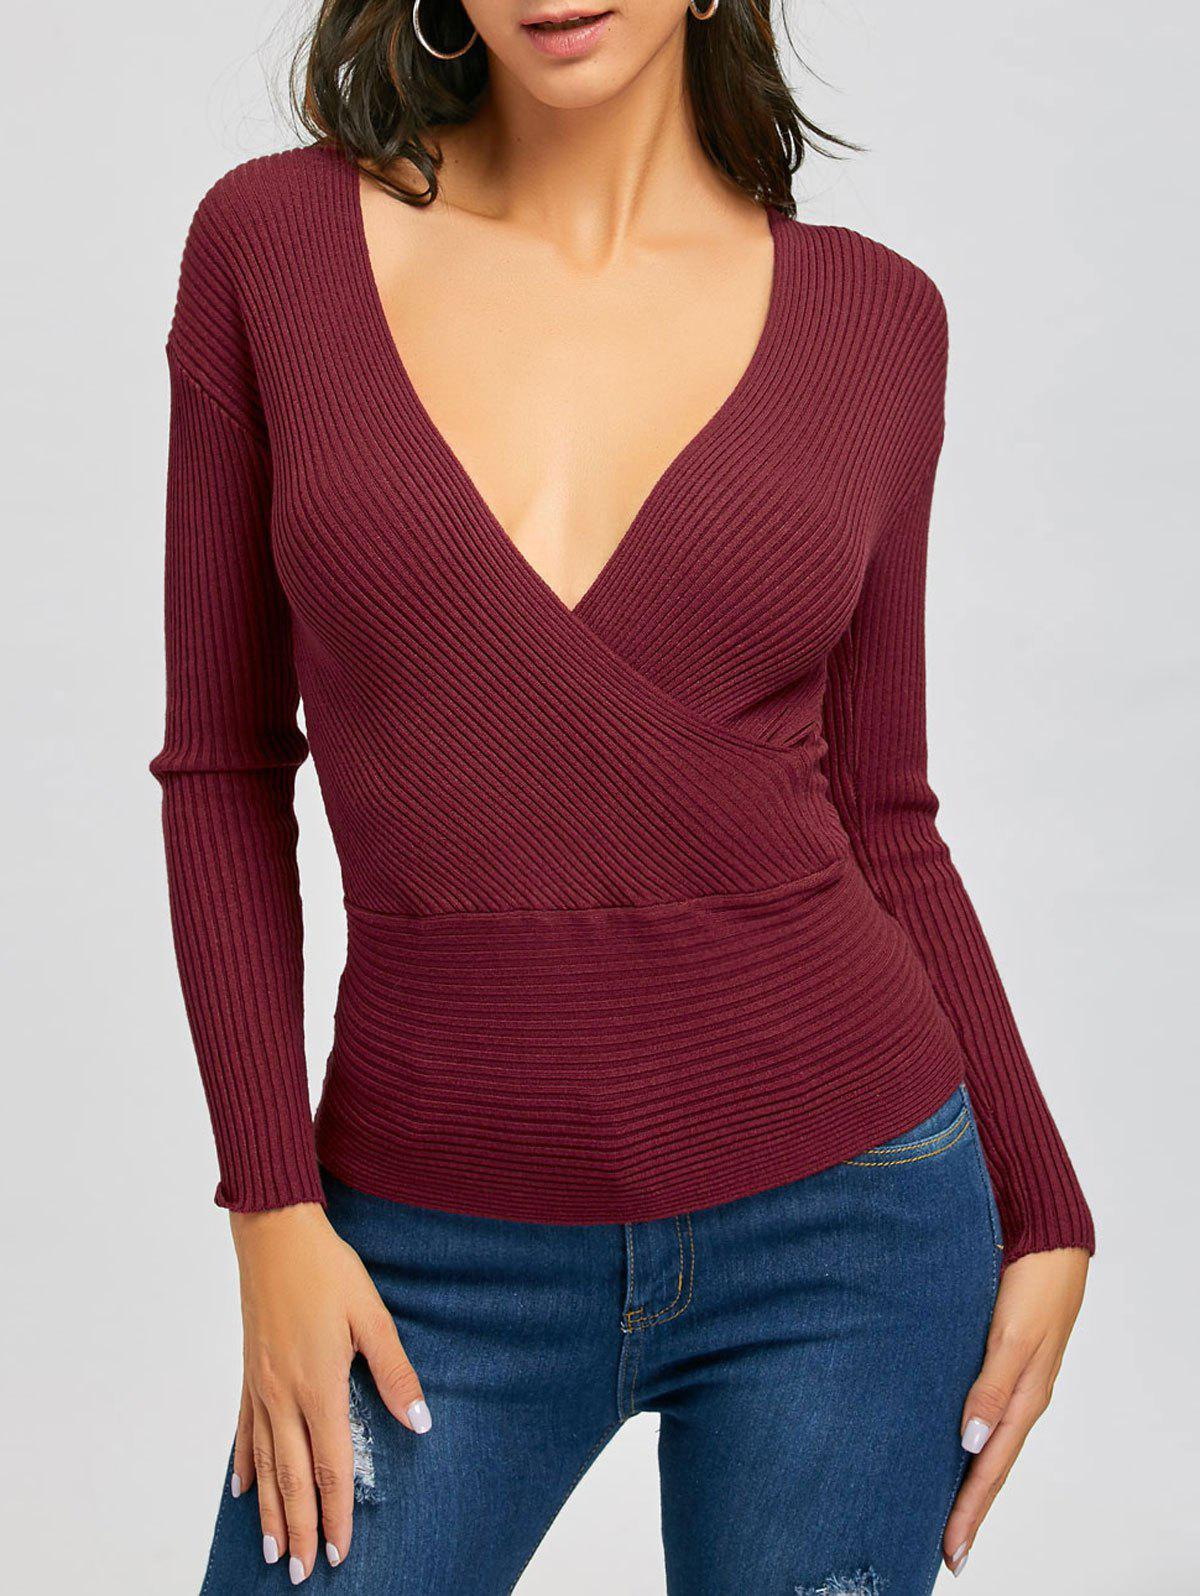 Plunging Neckline Ribbed Surplice Sweater - WINE RED ONE SIZE